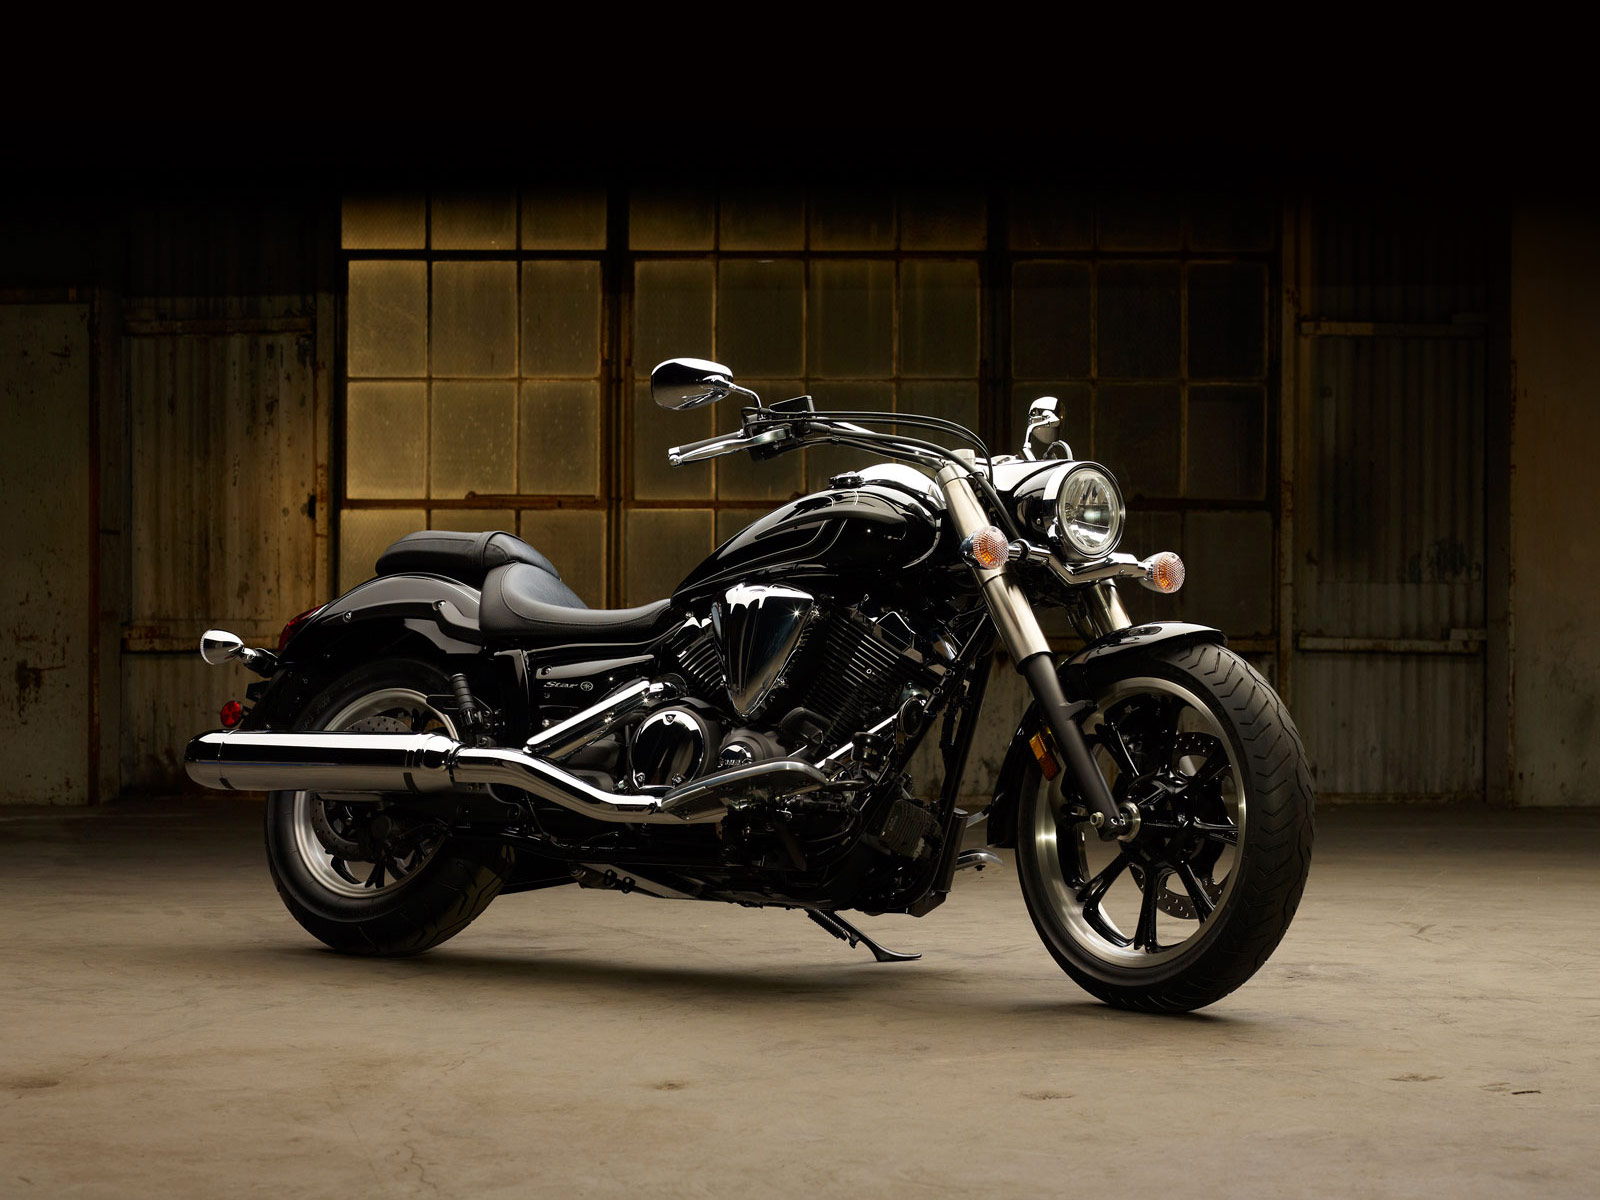 2011 yamaha vstar 950 motorcycle accident lawyer information